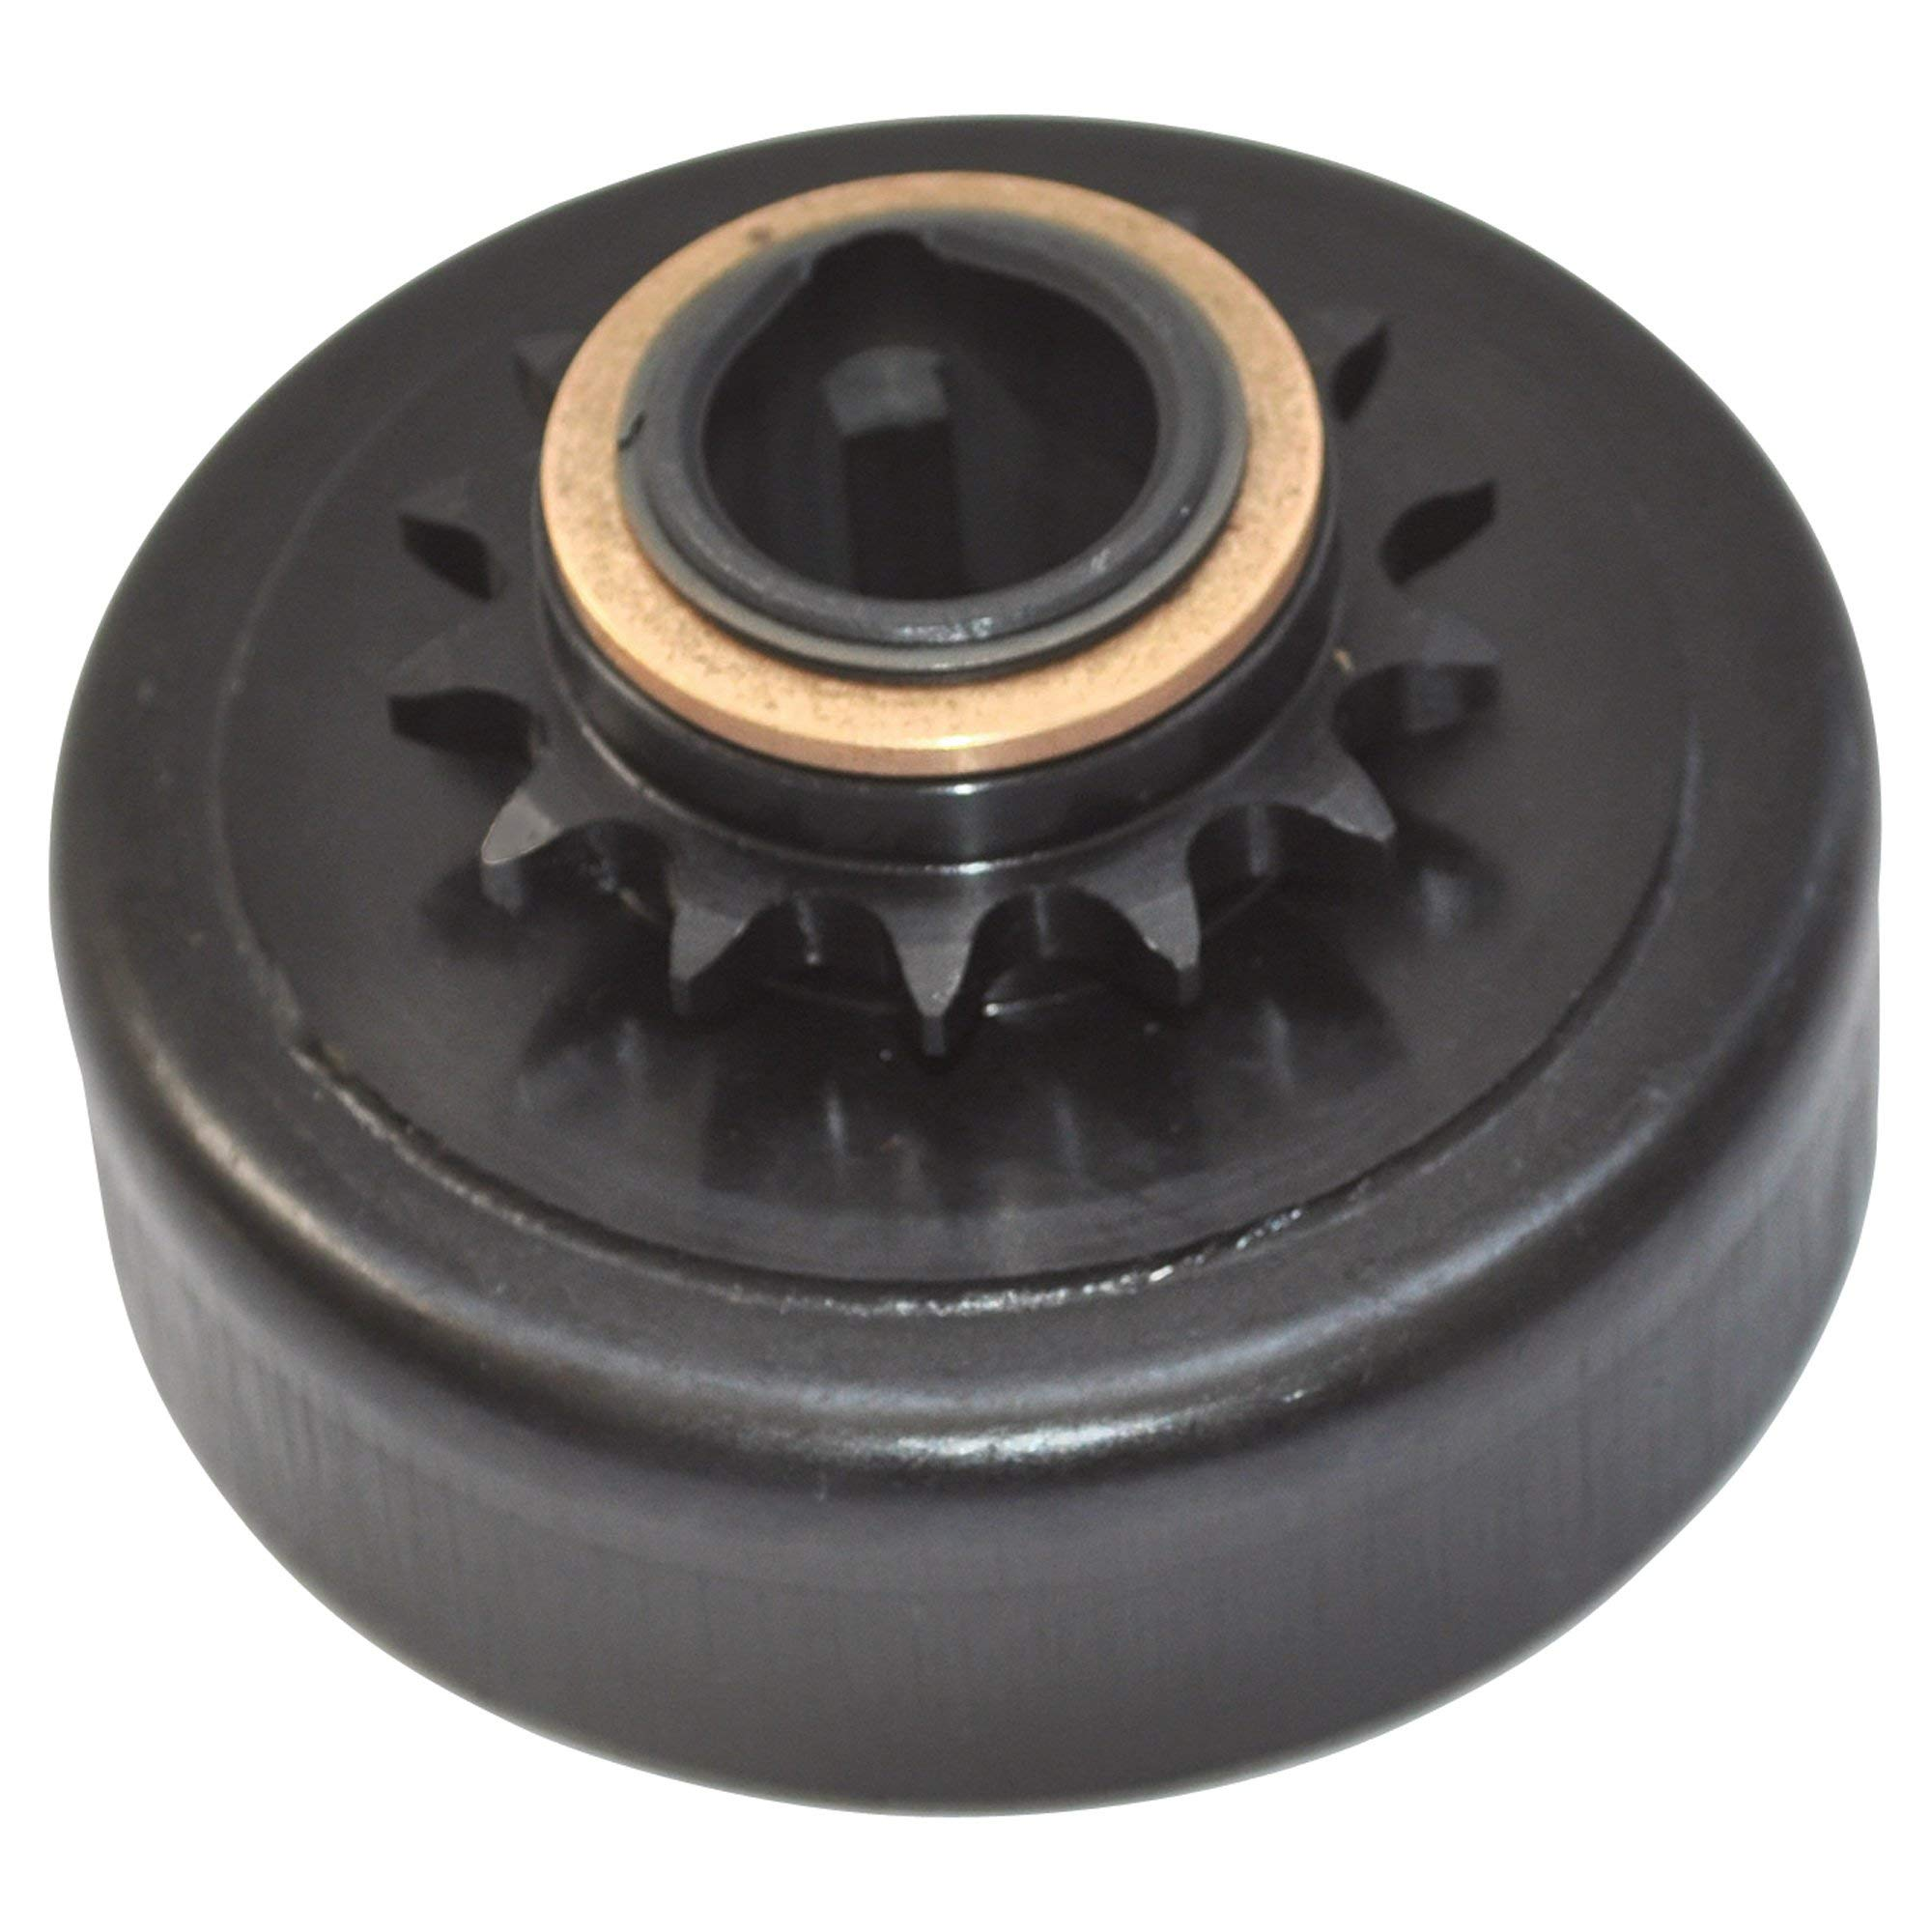 Hilliard Extreme-Duty Clutch Pulley O.D. 3 11//16in Bore 1in